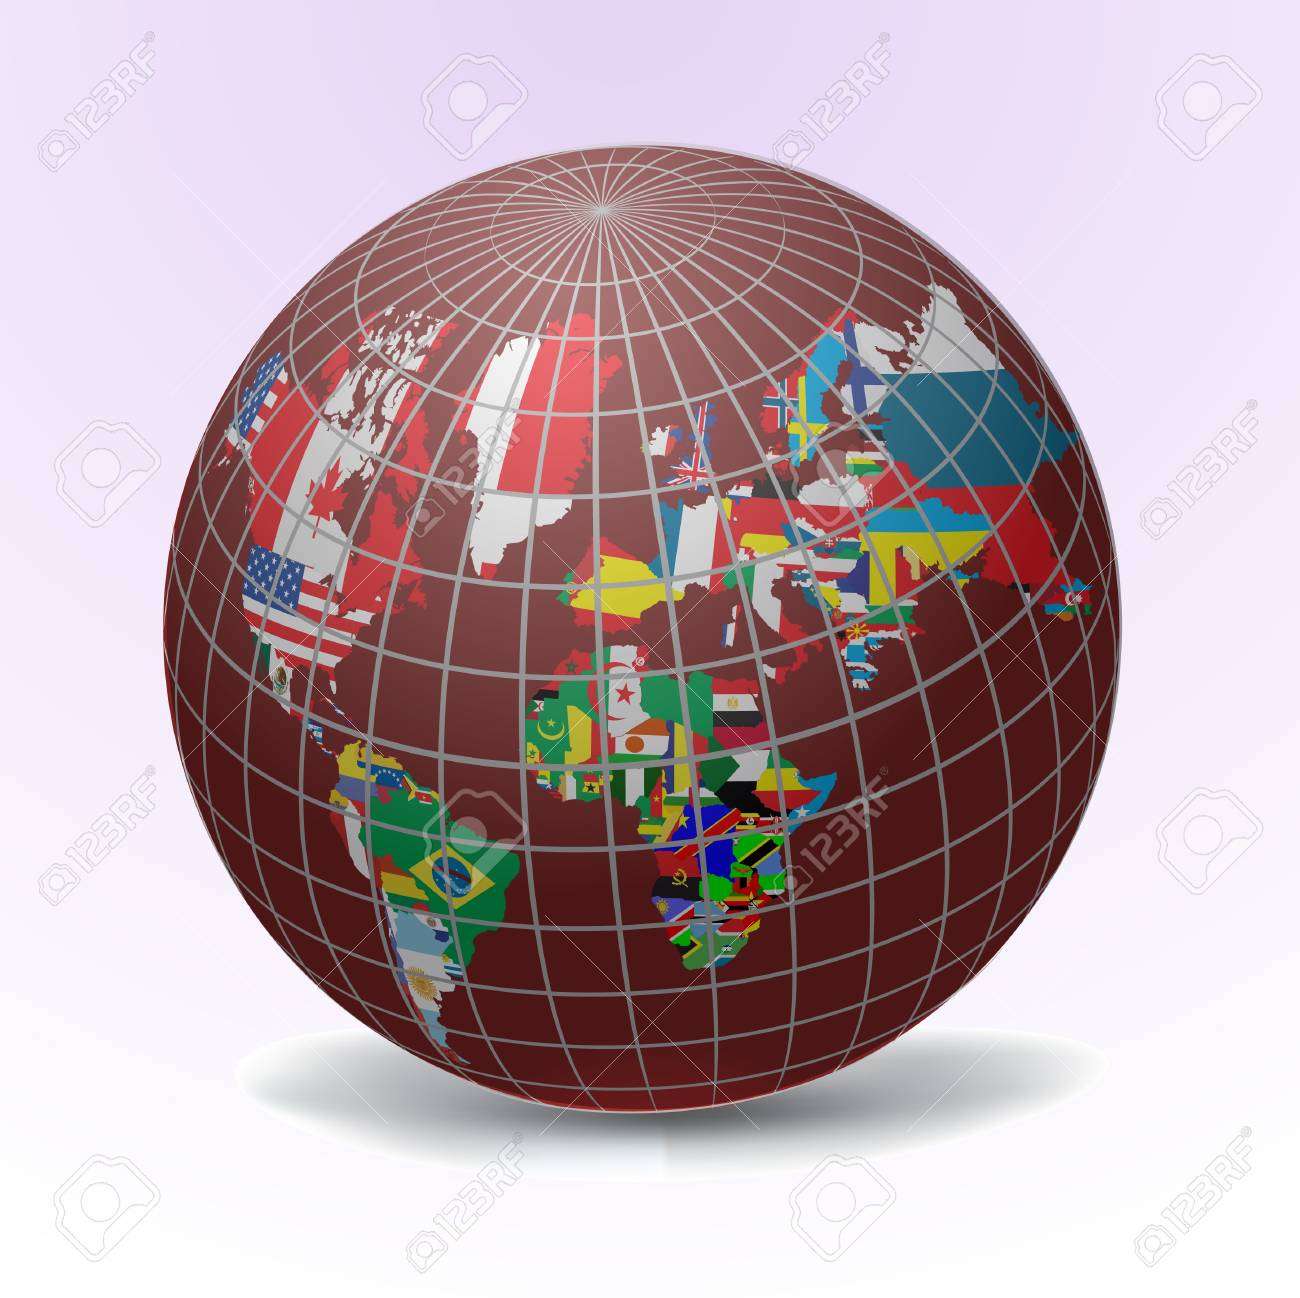 All flags in globe form, vecto illustration Stock Vector - 9686980